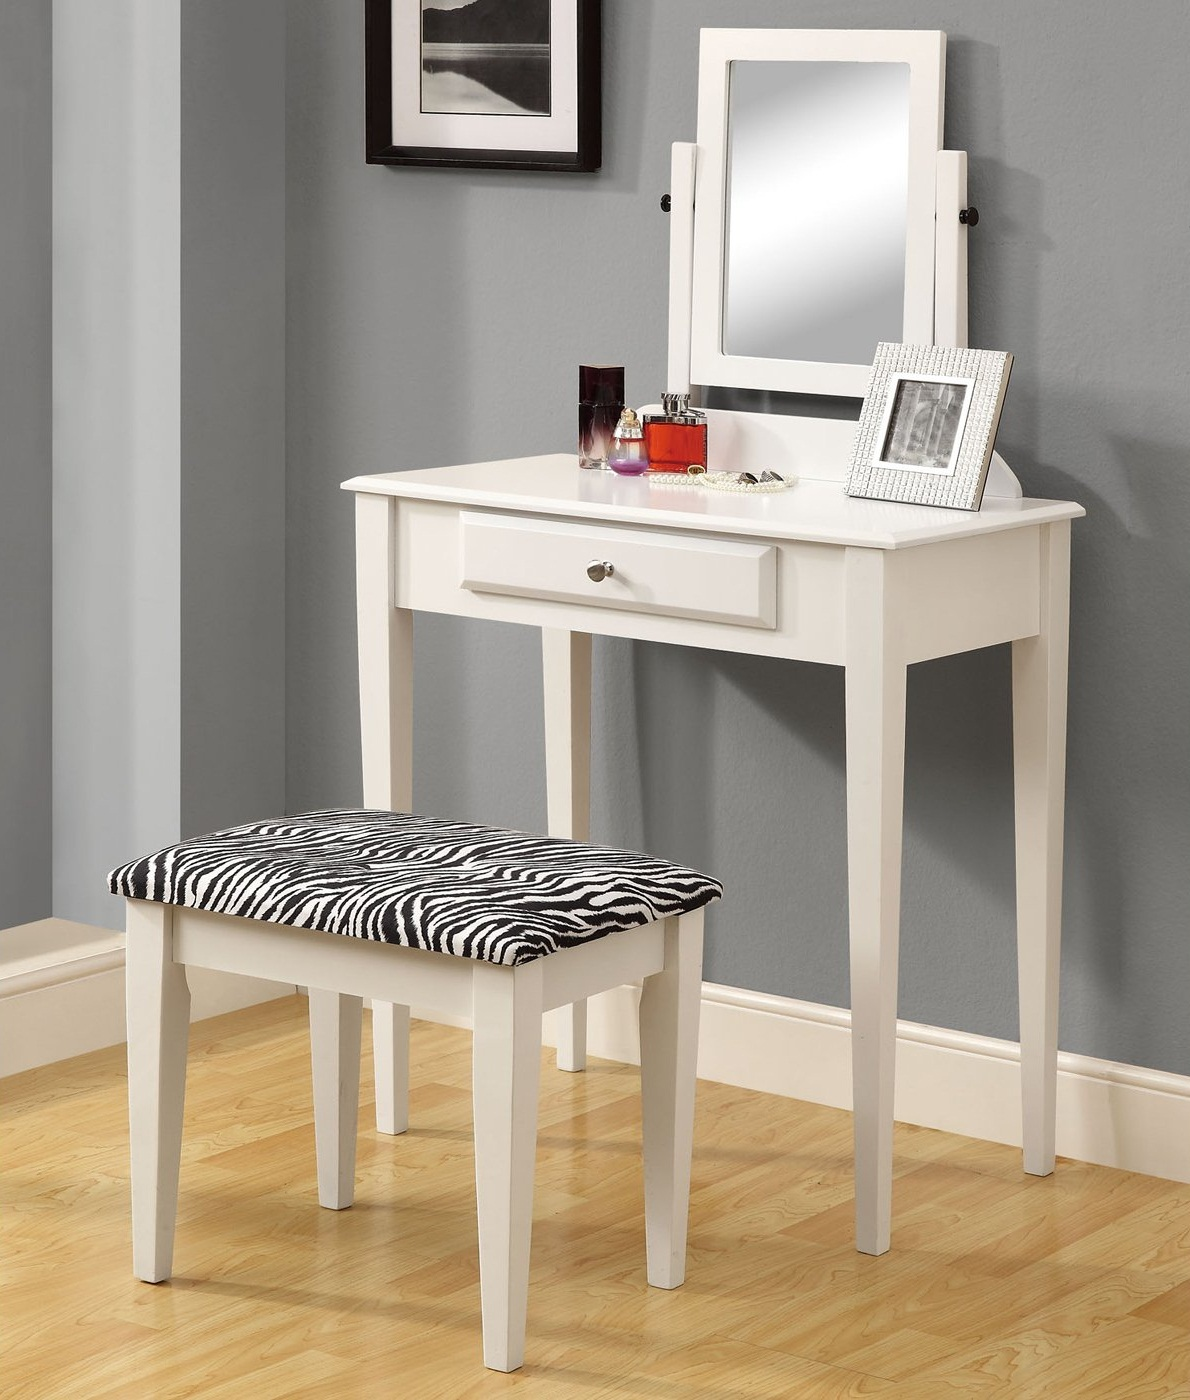 Bedroom Vanity with Drawers Type